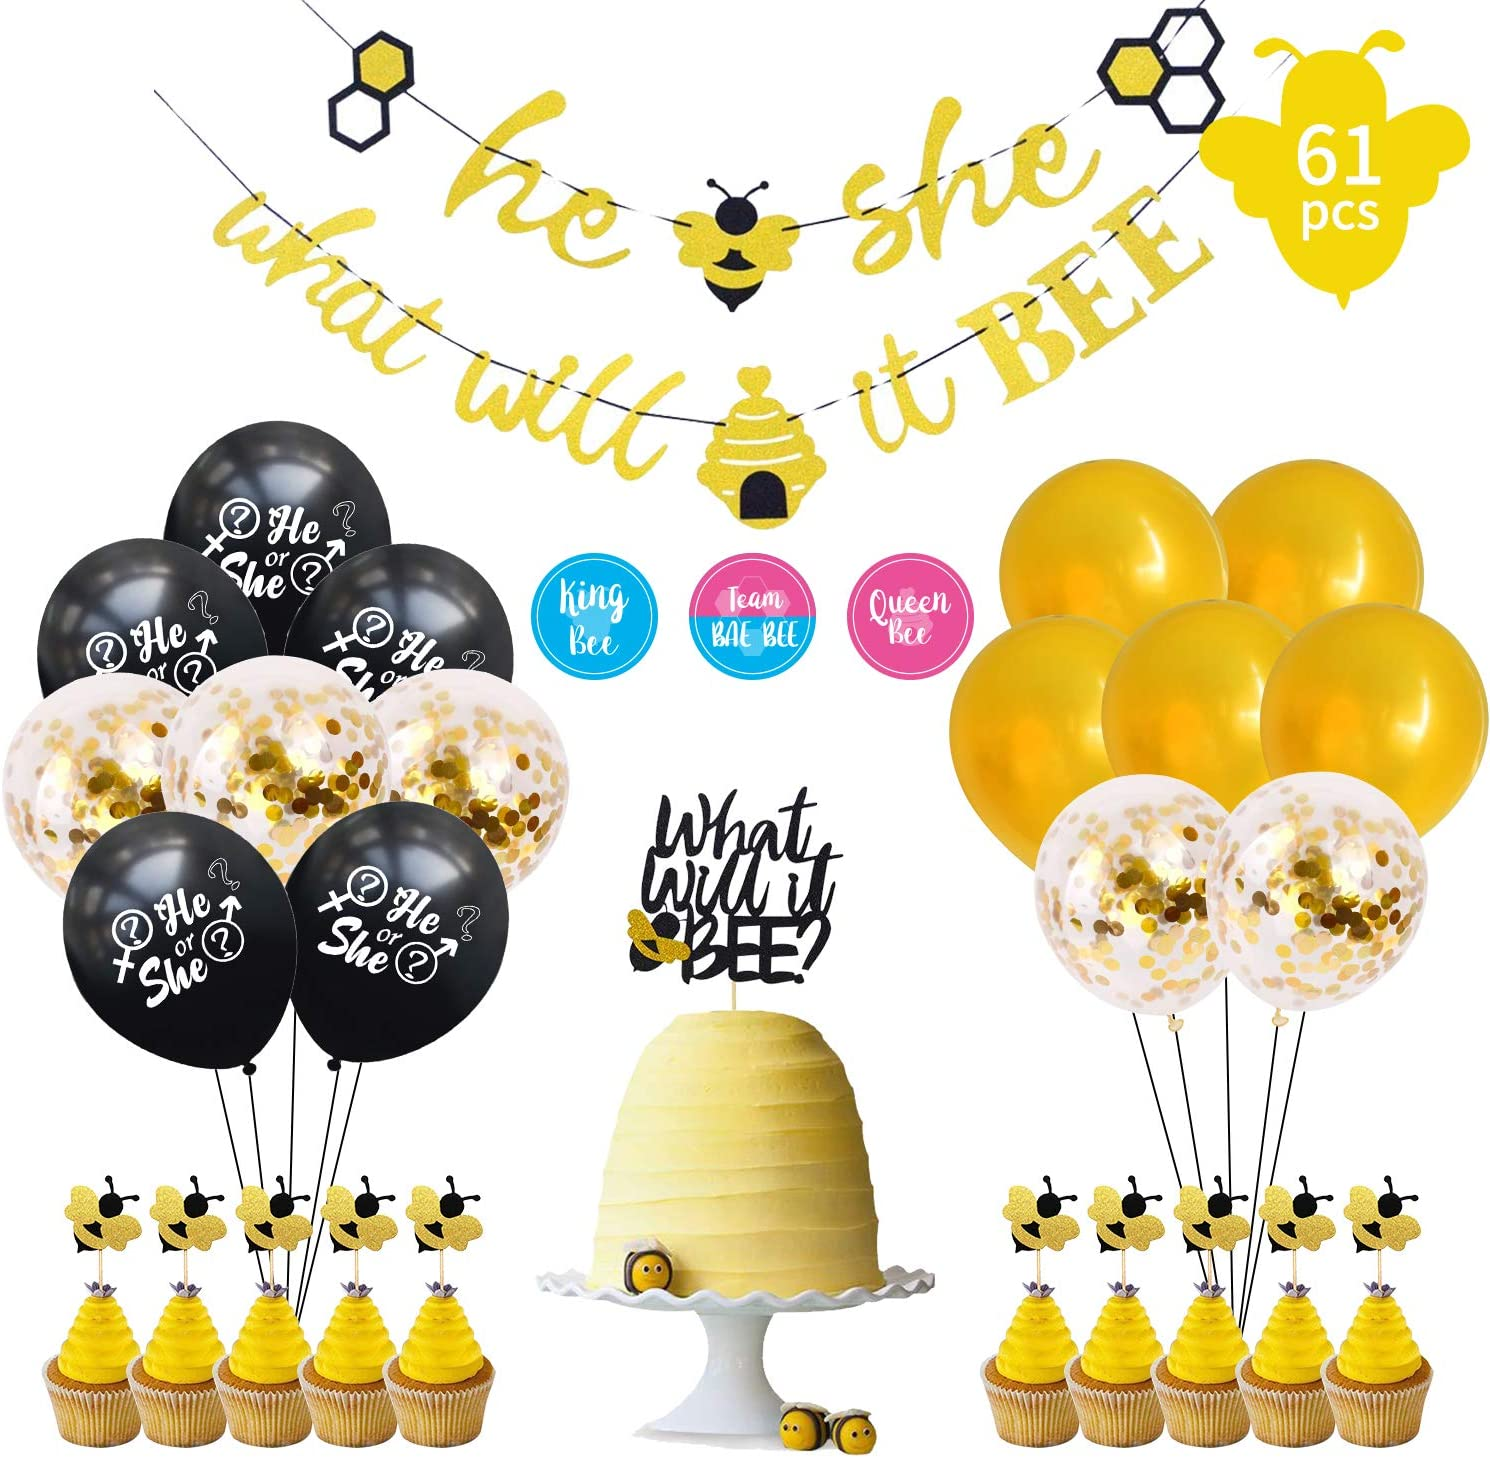 Updated New What Will It Bee Gender Reveal Party Supplies Set | Bumble Bee He or She Baby Shower Banner, Cake Topper, Balloons | Free 24 Team Boy or Girl Labels | Themed Baby Shower Decorations